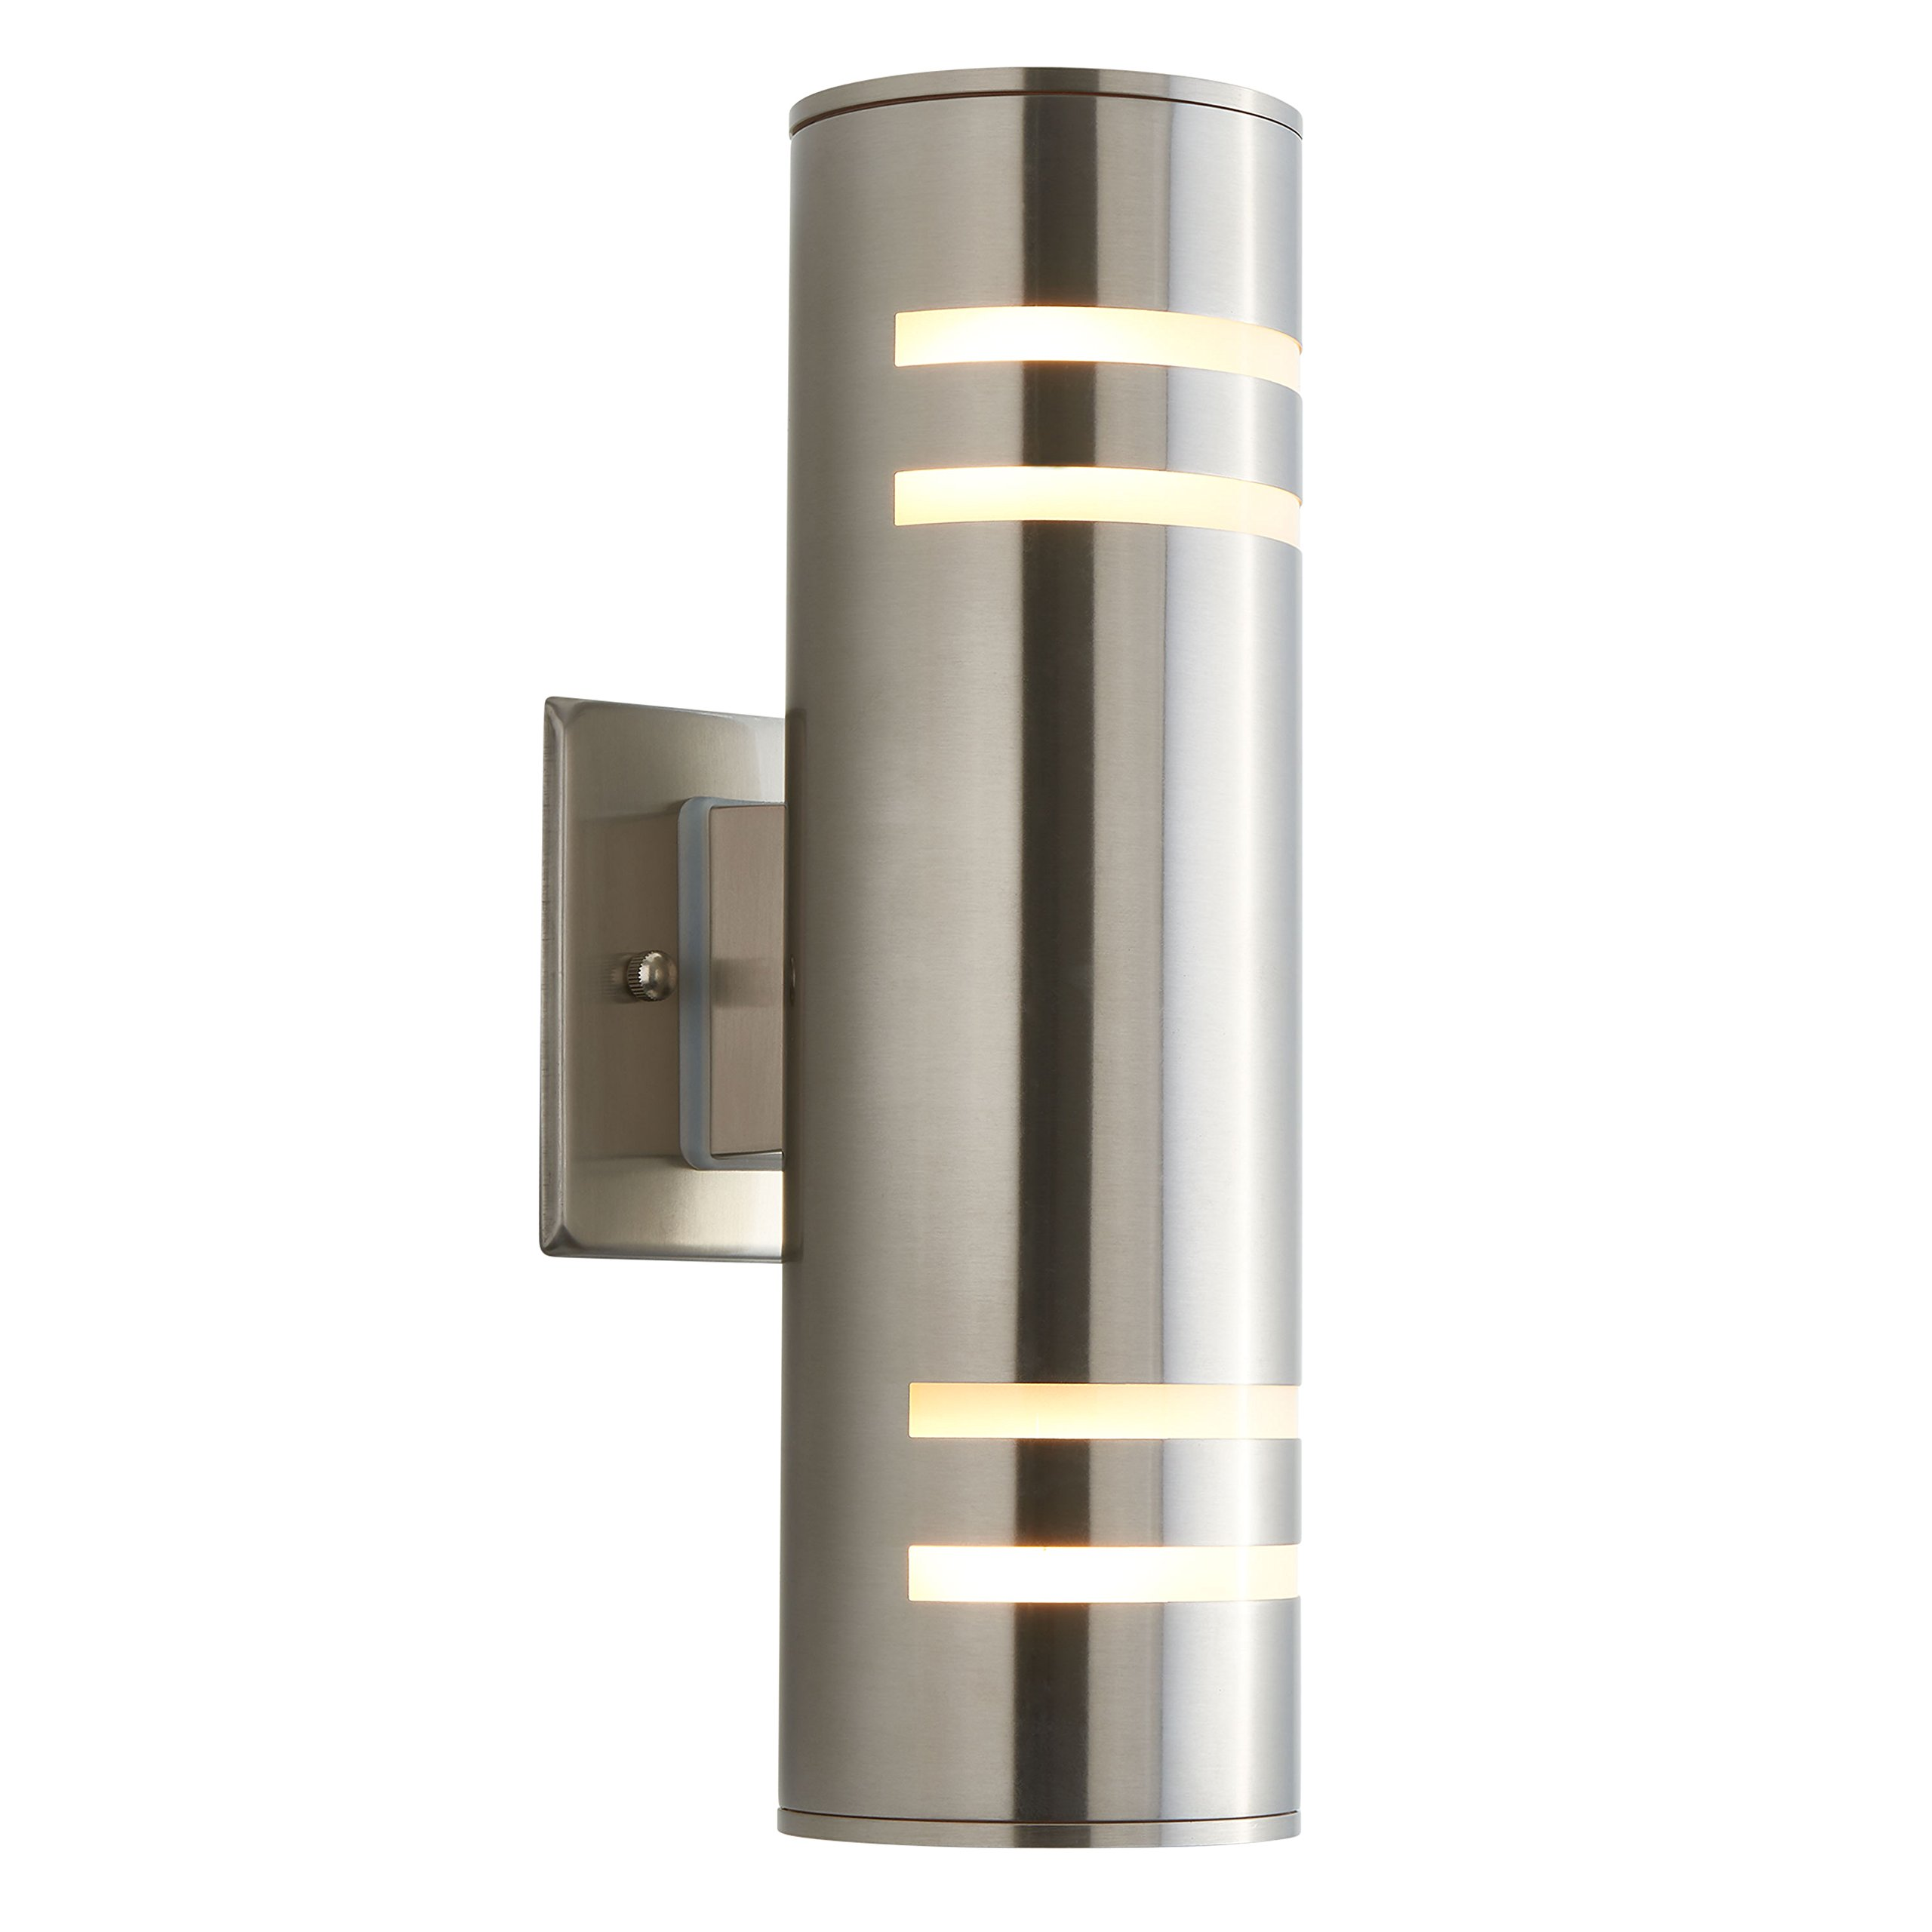 Artika 77-888A Cca V3 Modern 13'' Outdoor Cylinder Light Stainless Steel Weather Resistant, Bulbs Included, Brushed Steel